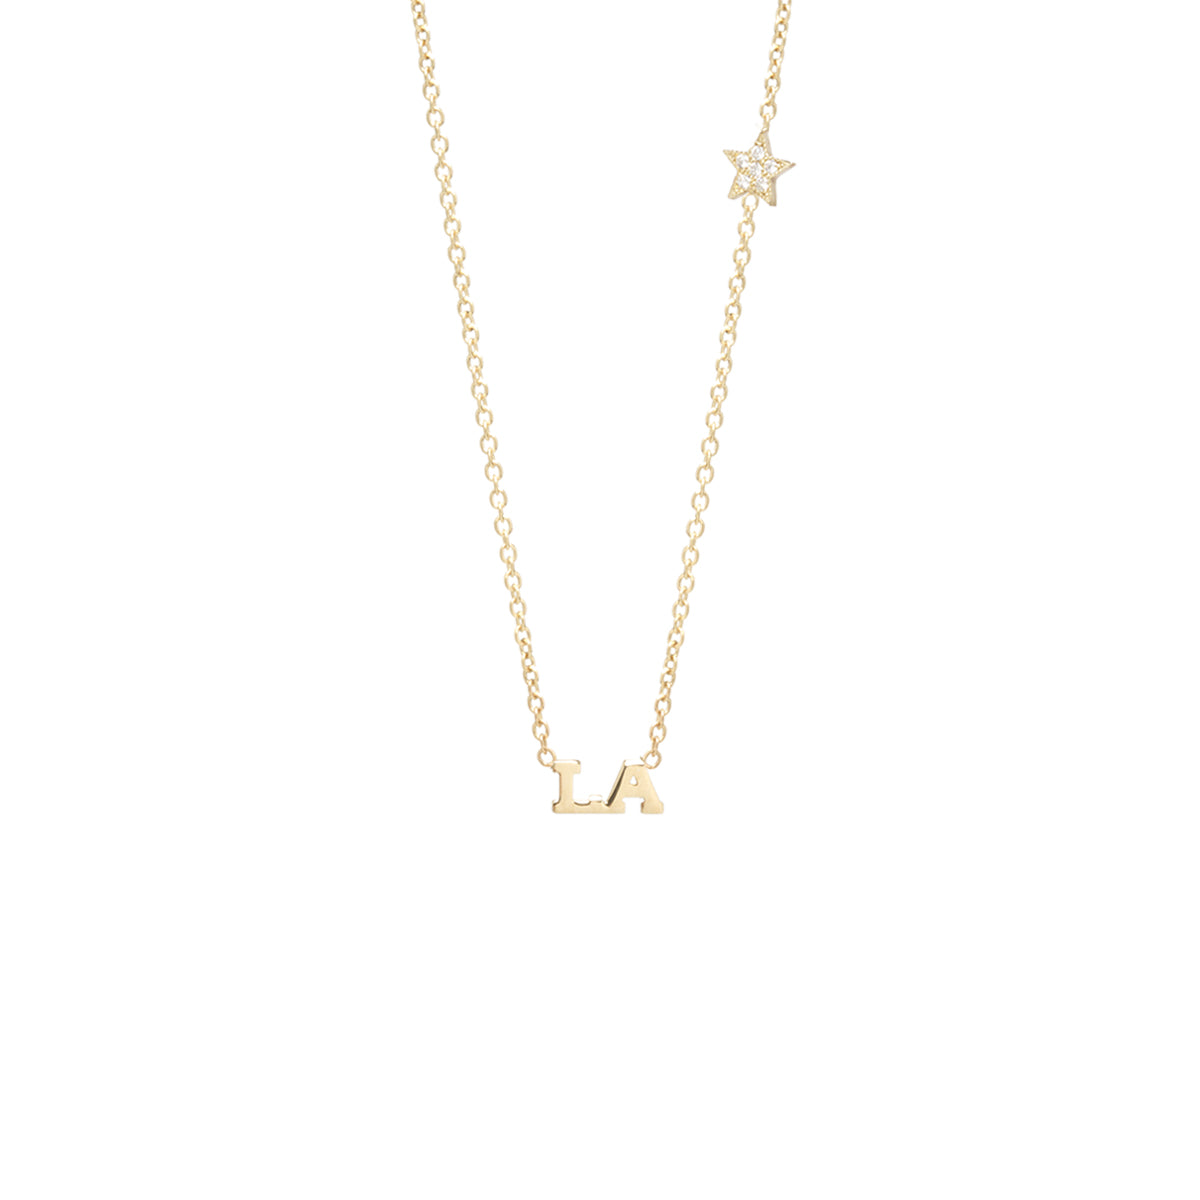 14k itty bitty LA necklace with floating pave star